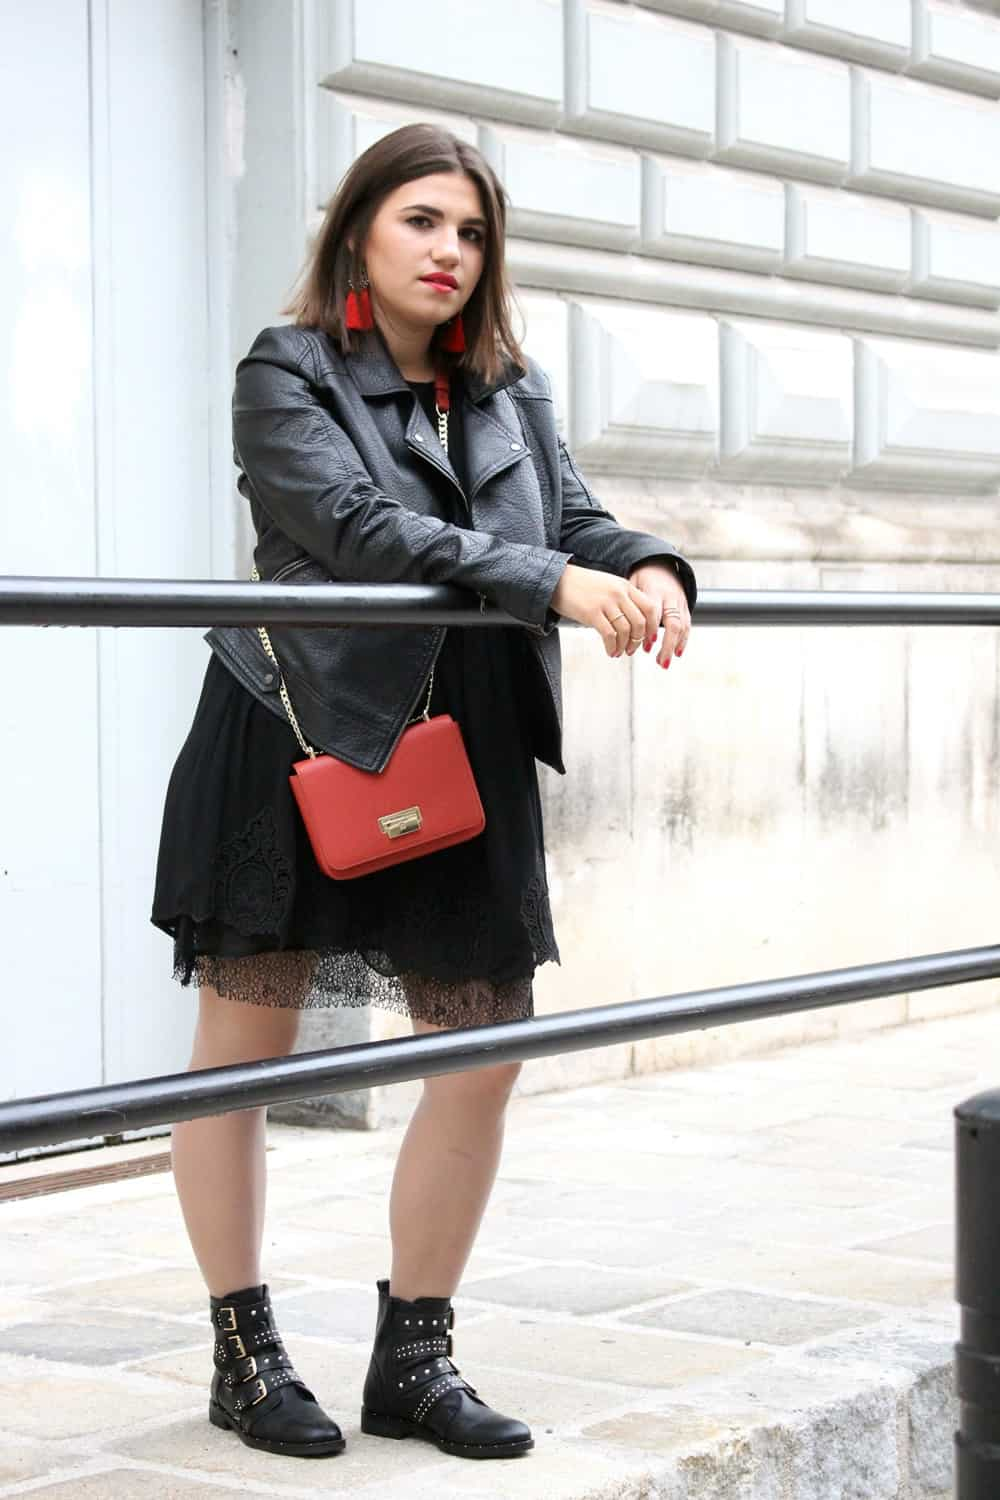 Outfitinspiration: all black and red bag